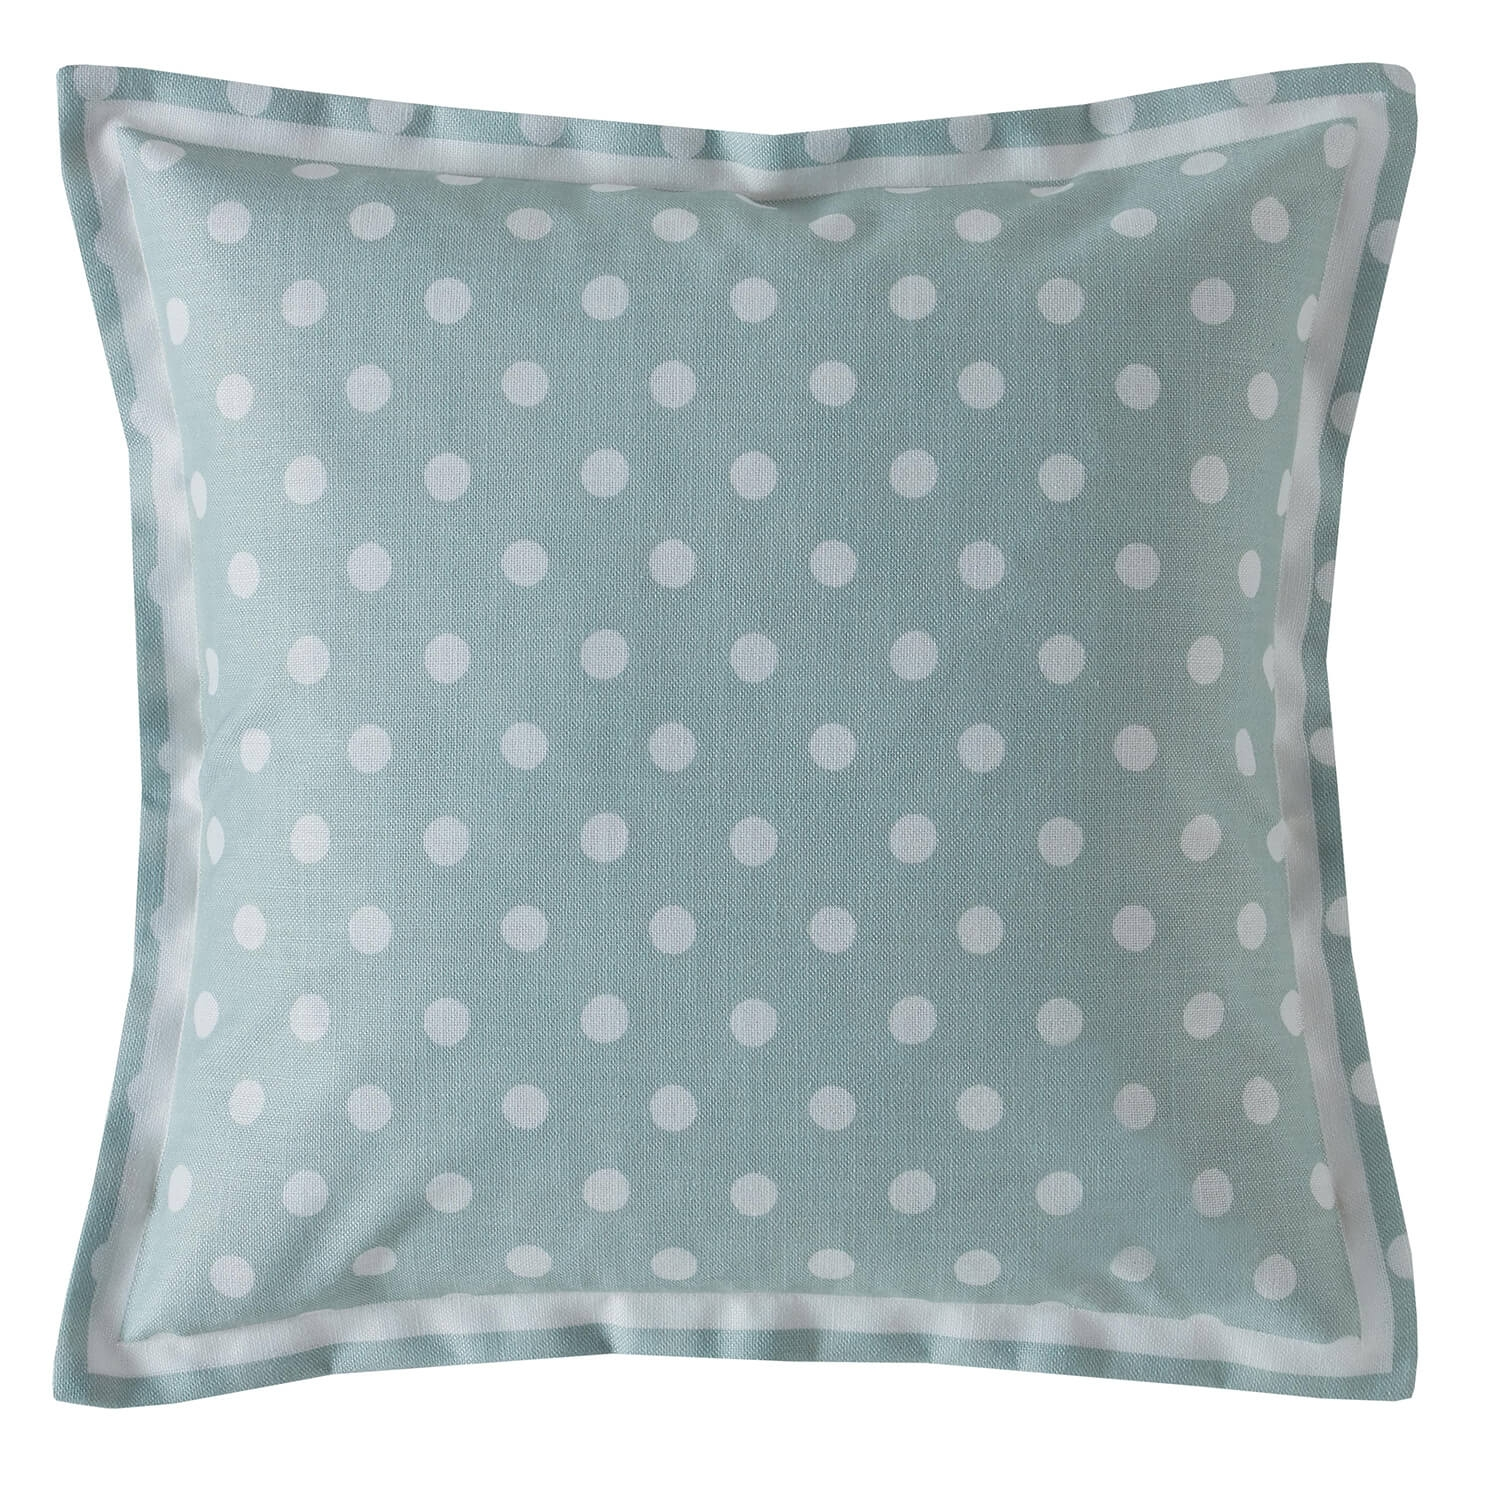 Image of Cath Kidston Button Spot Cushion, Mint